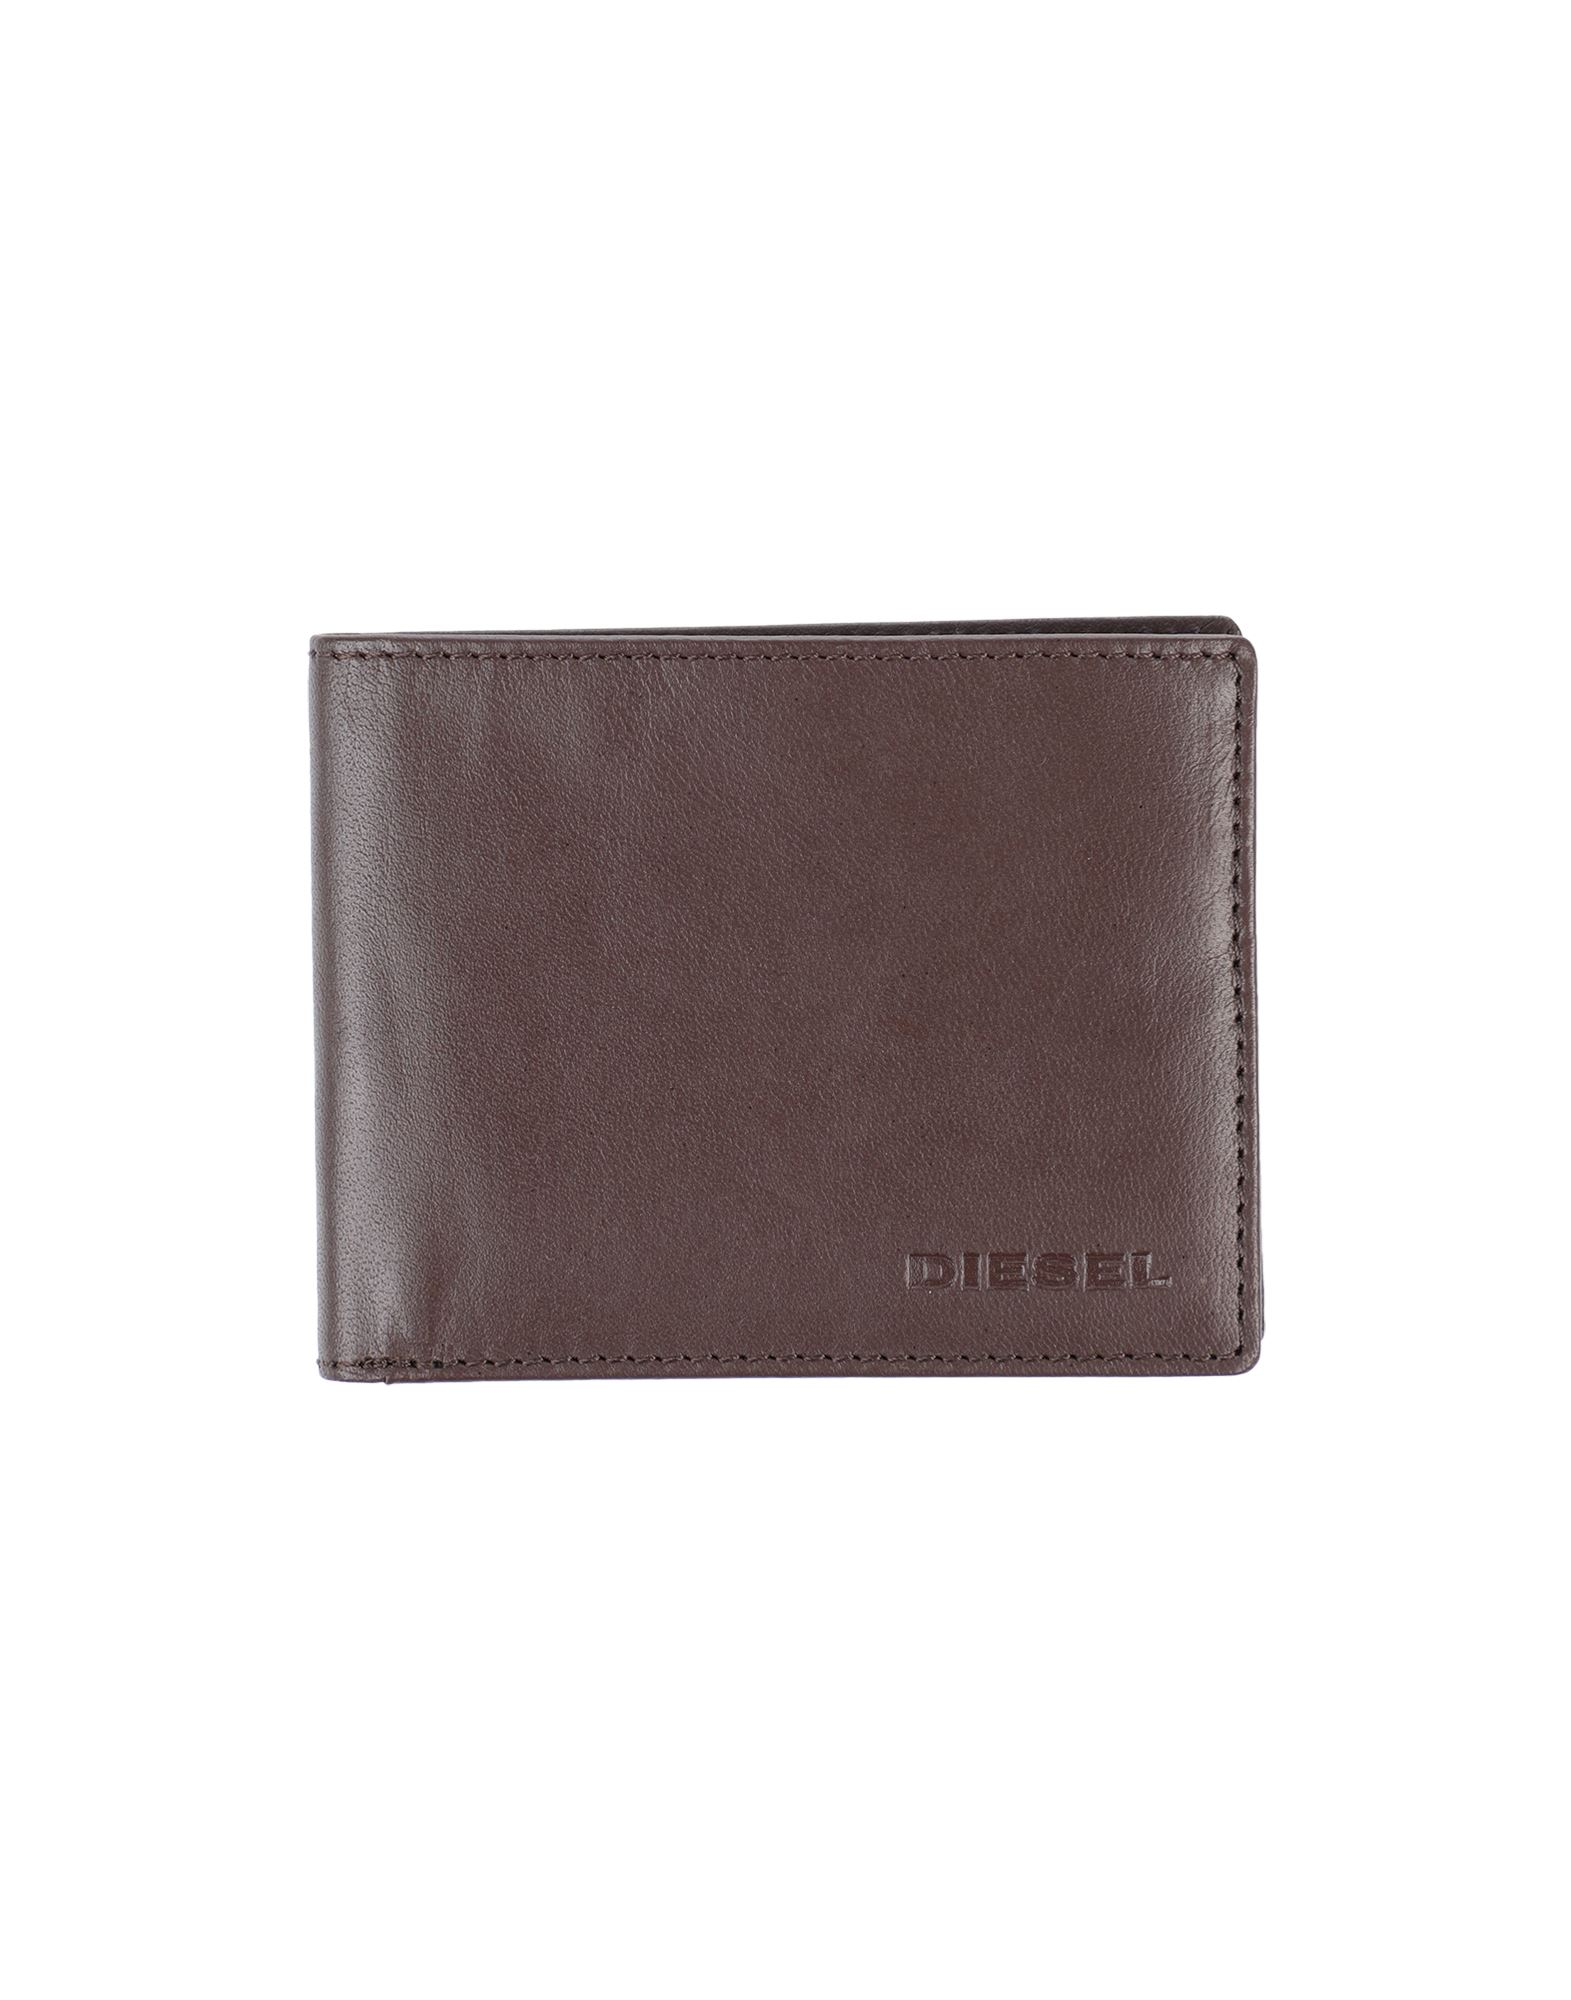 DIESEL Wallets - Item 46723622